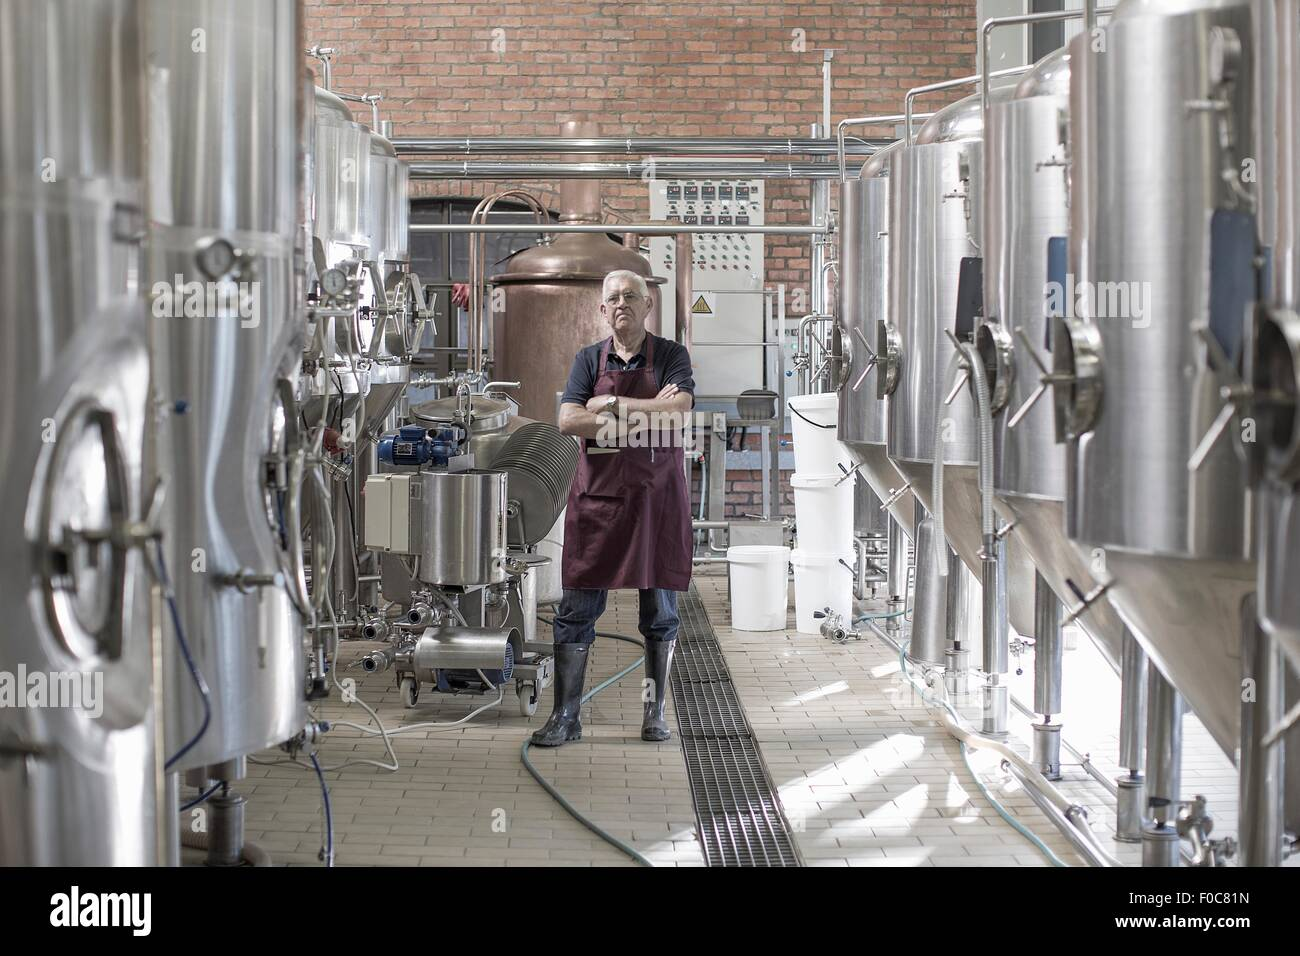 Portrait of brewer in brewery, standing next to stainless steel tanks - Stock Image